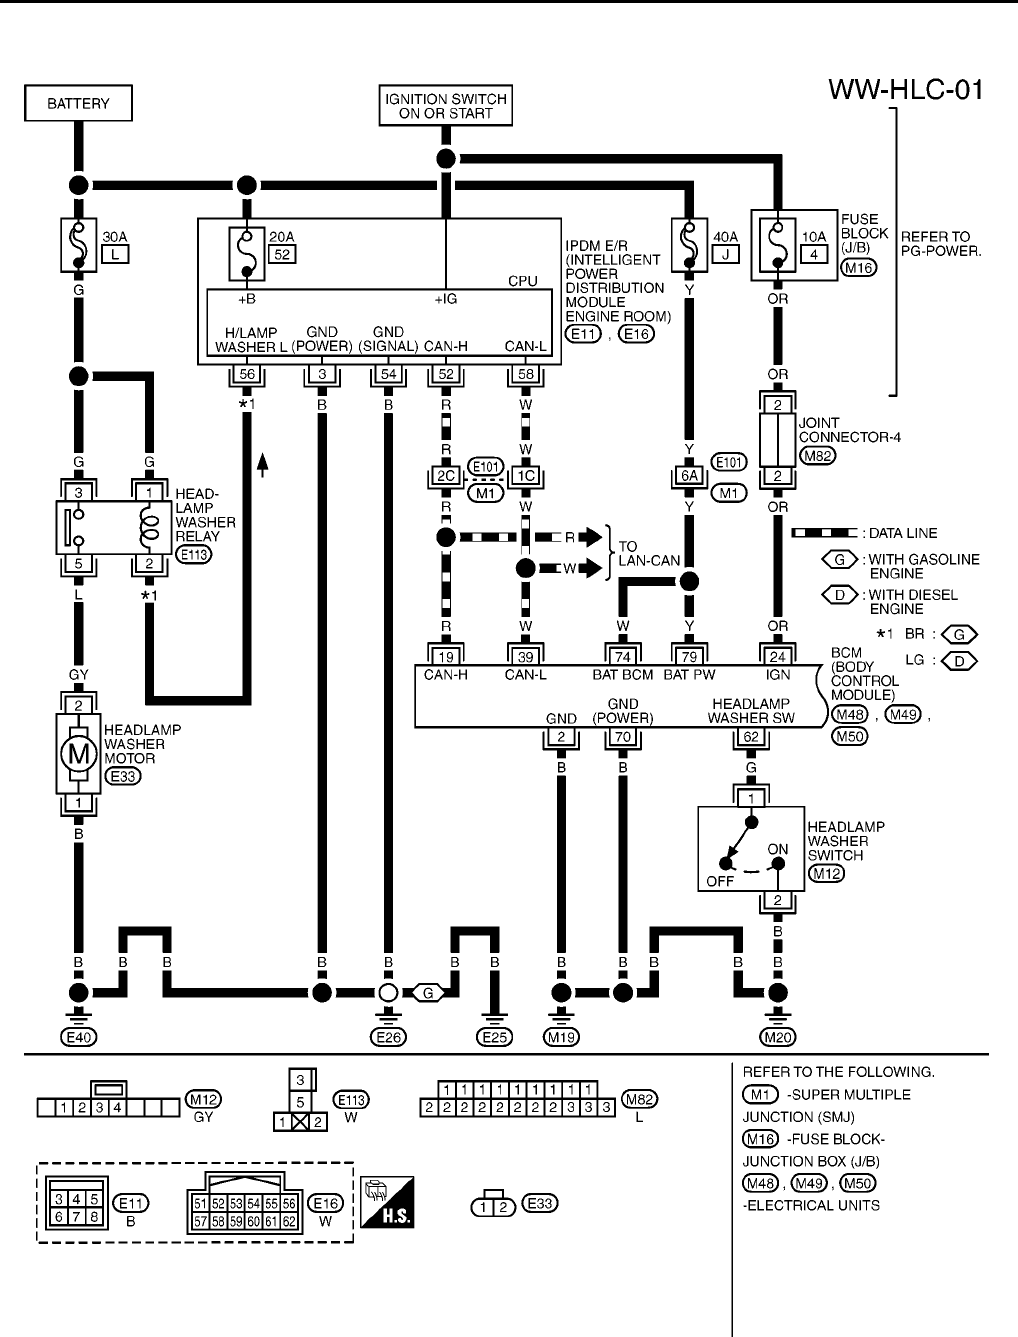 Nissan wiring diagram pdf find wiring diagram nissan micra wiring diagrams 2003 2005 36 pdf rh manuals co nissan caravan wiring diagram pdf cheapraybanclubmaster Choice Image